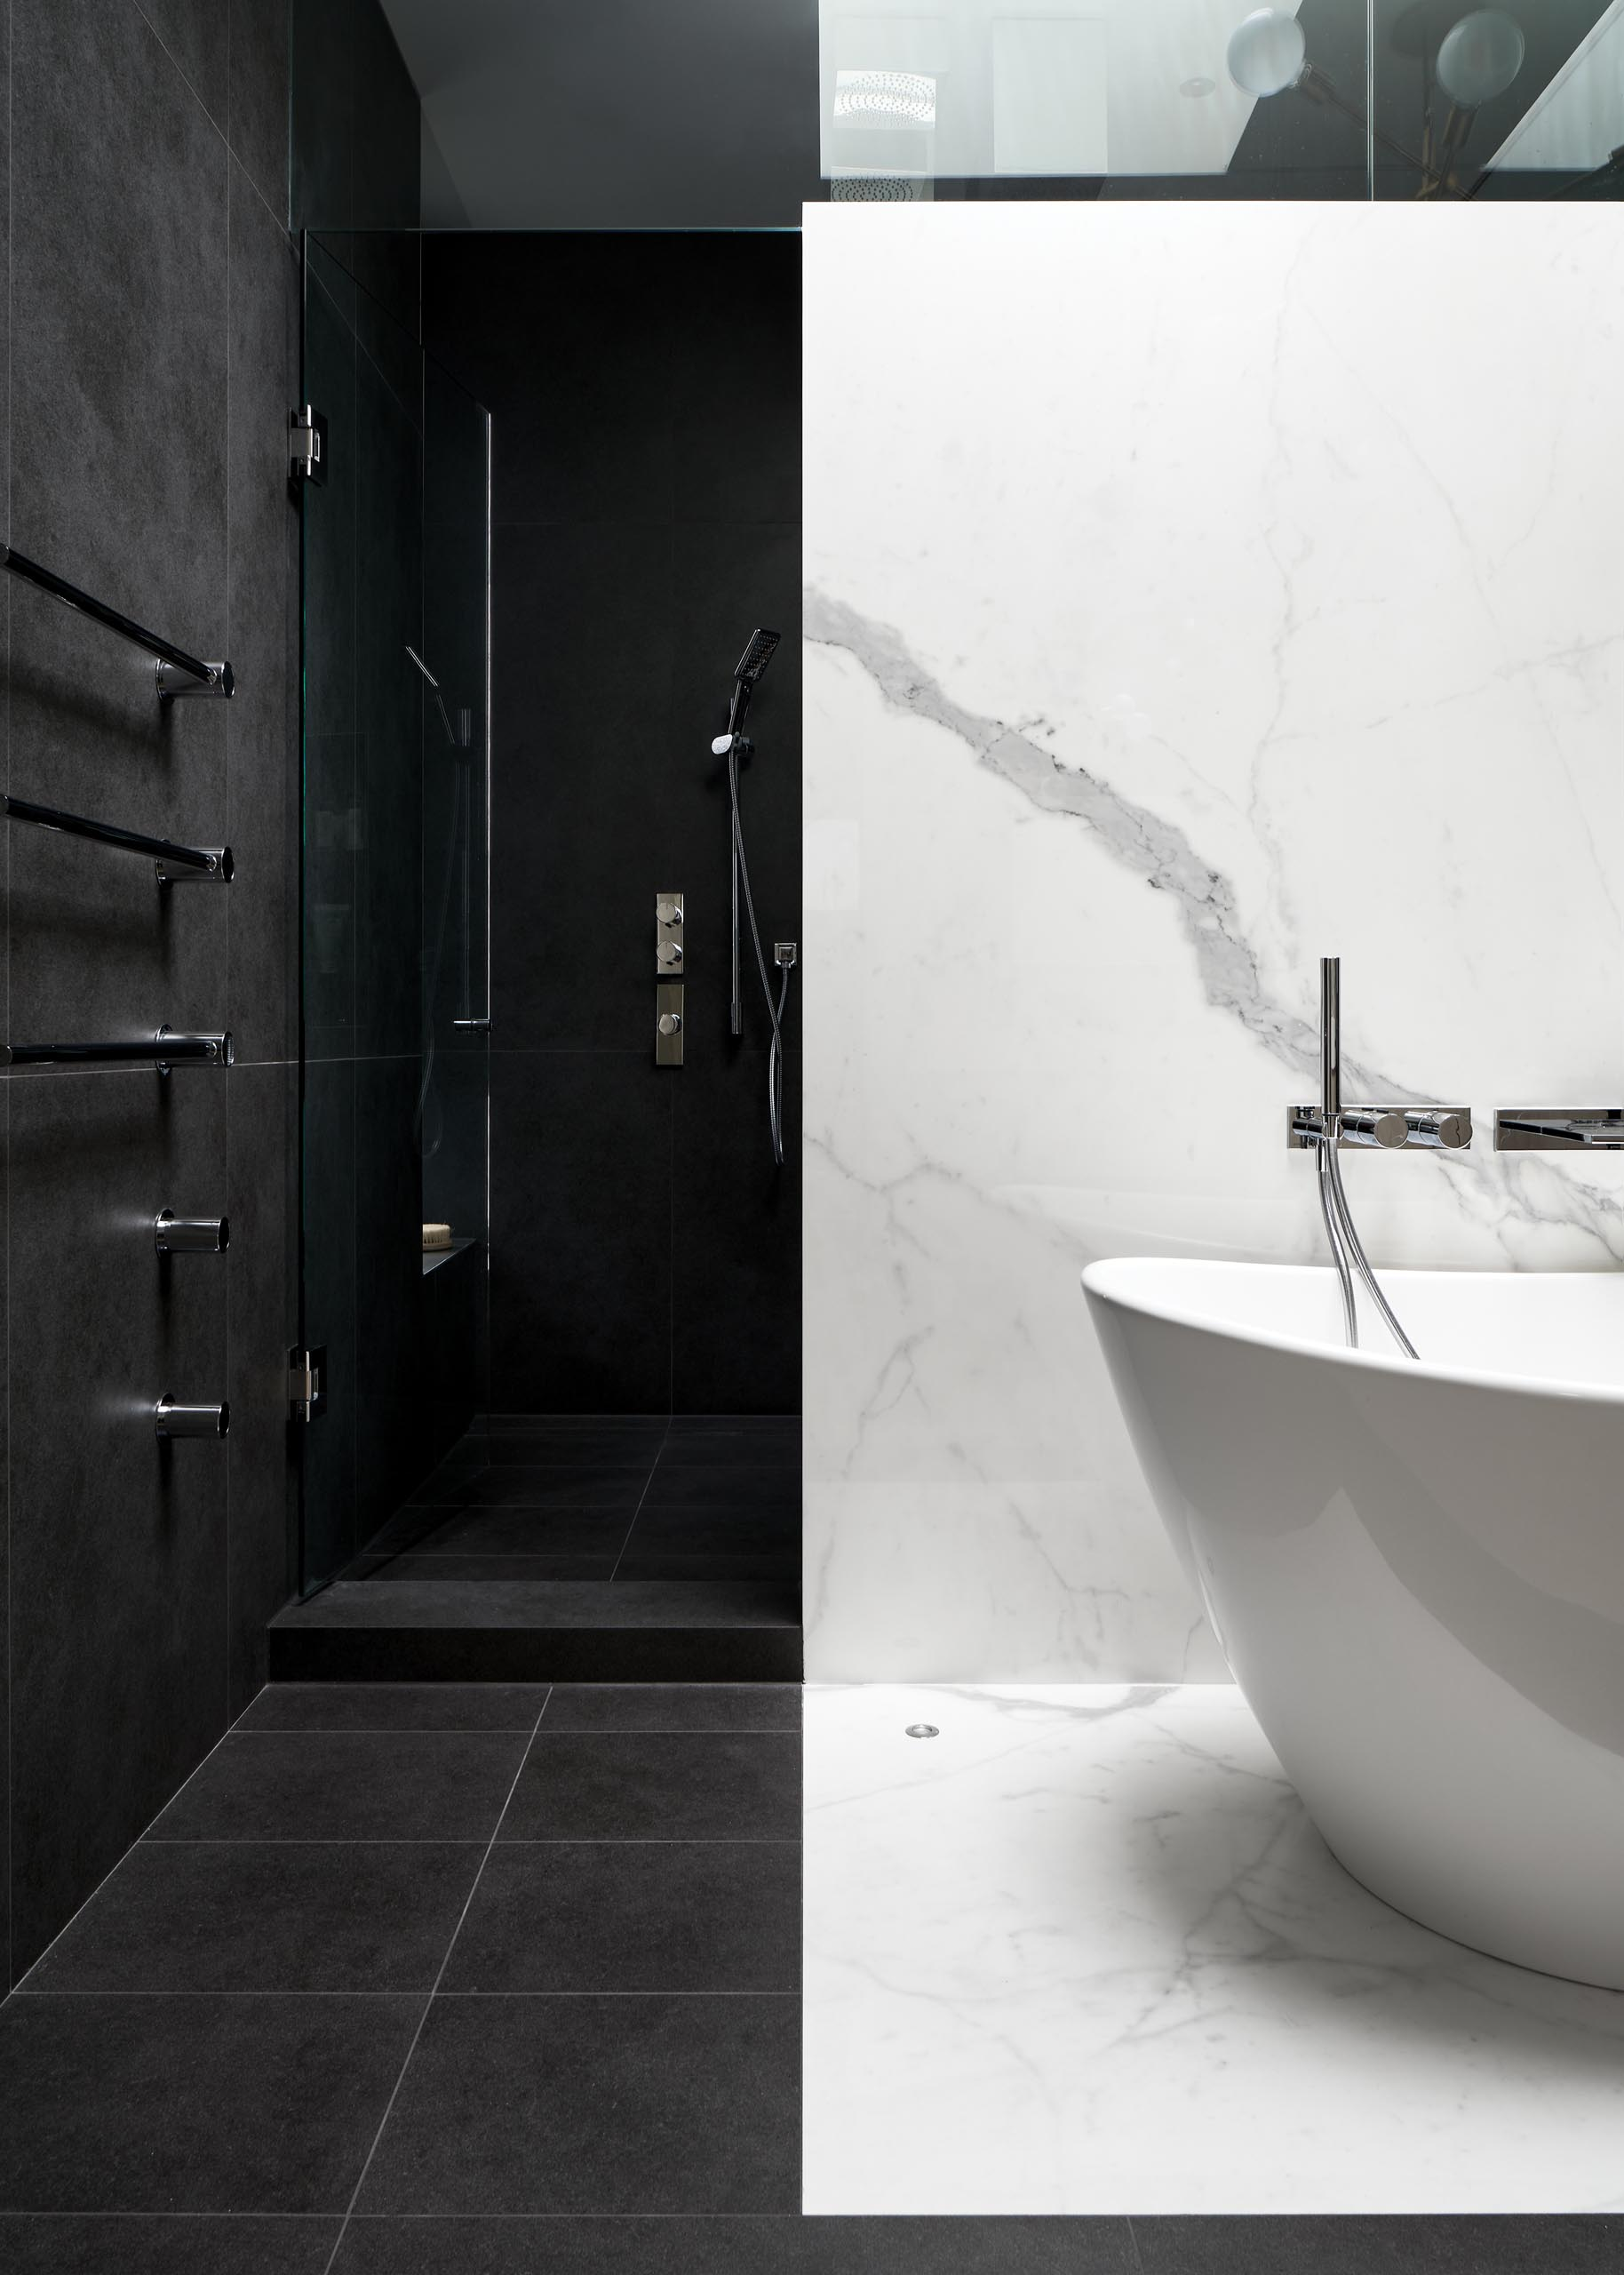 In this modern bathroom, white and black porcelain slabs are combined to create a dramatic contrast.